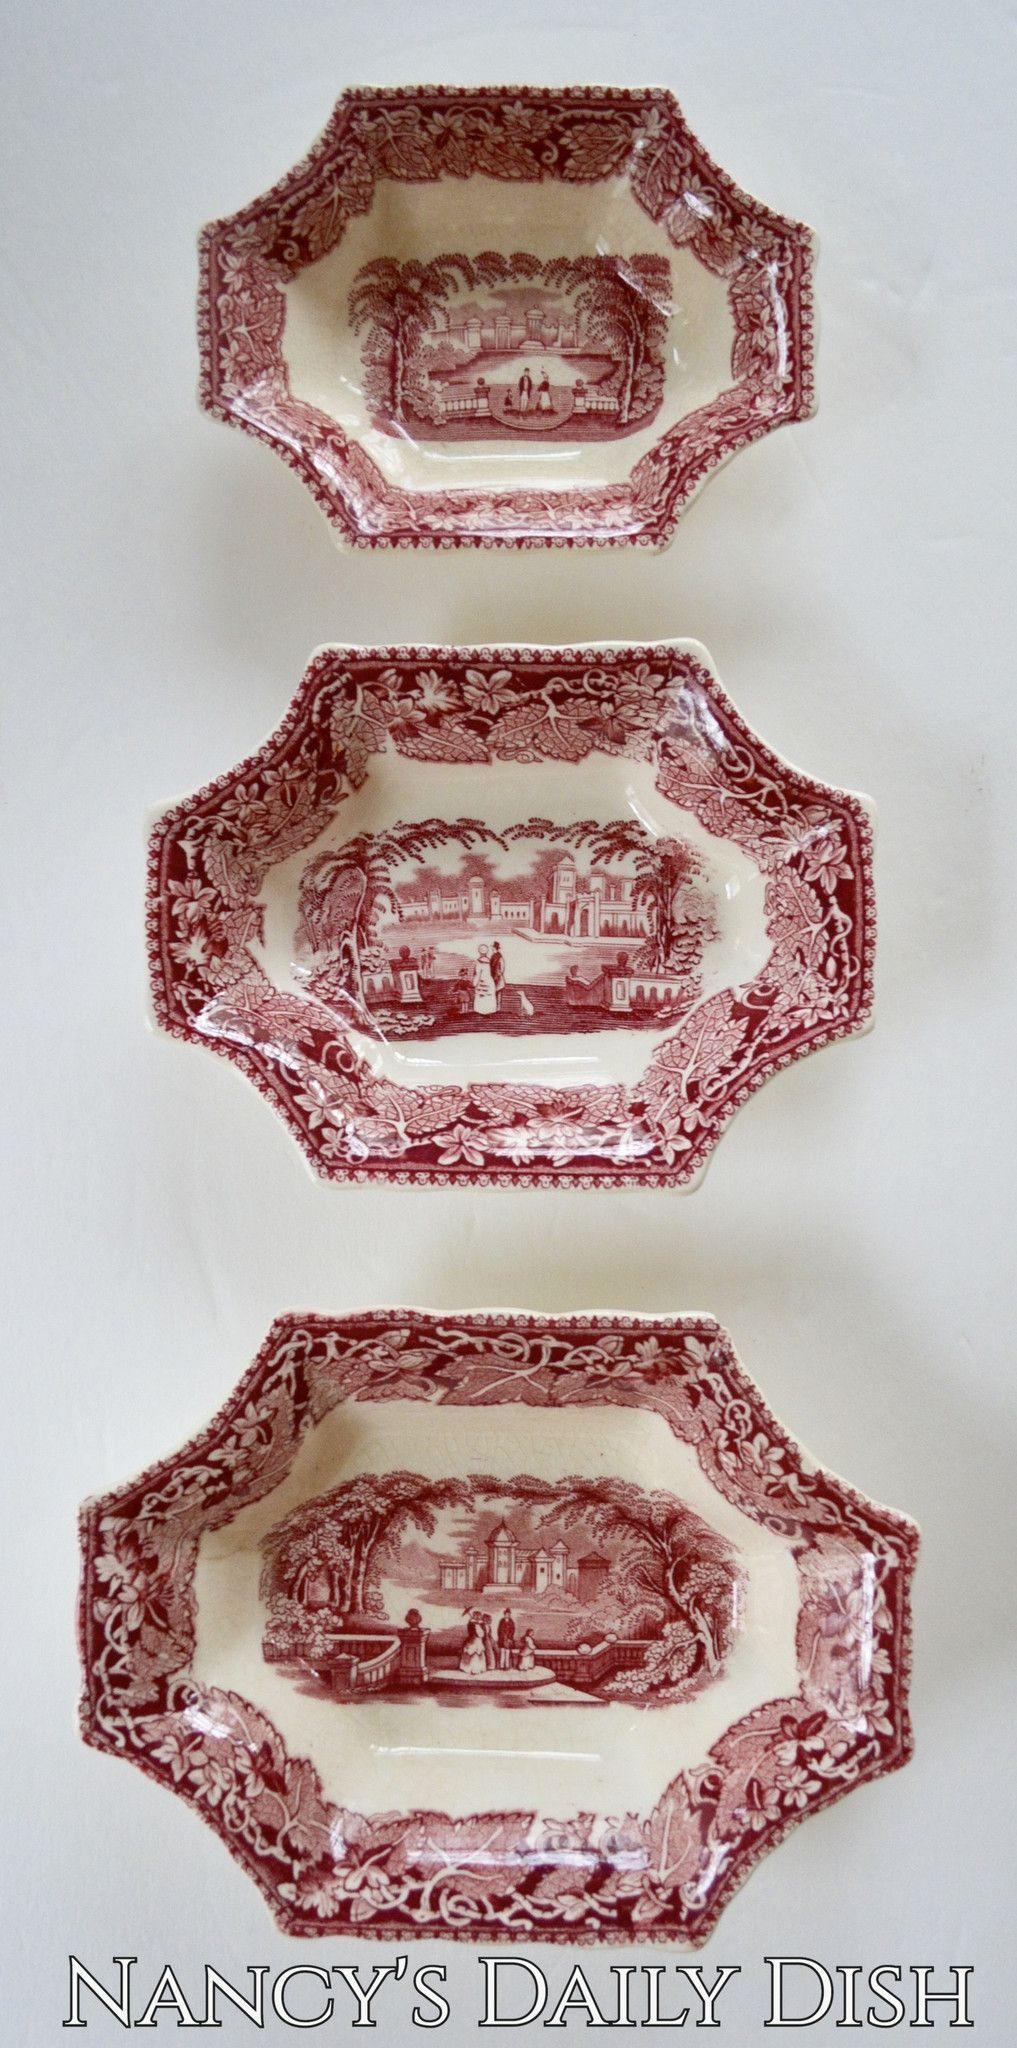 Set of 3 Graduated Sizes Red Toile Transferware Masons Vista 8 Sided Trinket Candy Dish or Relish Bowl & Set of 3 Graduated Sizes Red Toile Transferware Masons Vista 8 Sided ...